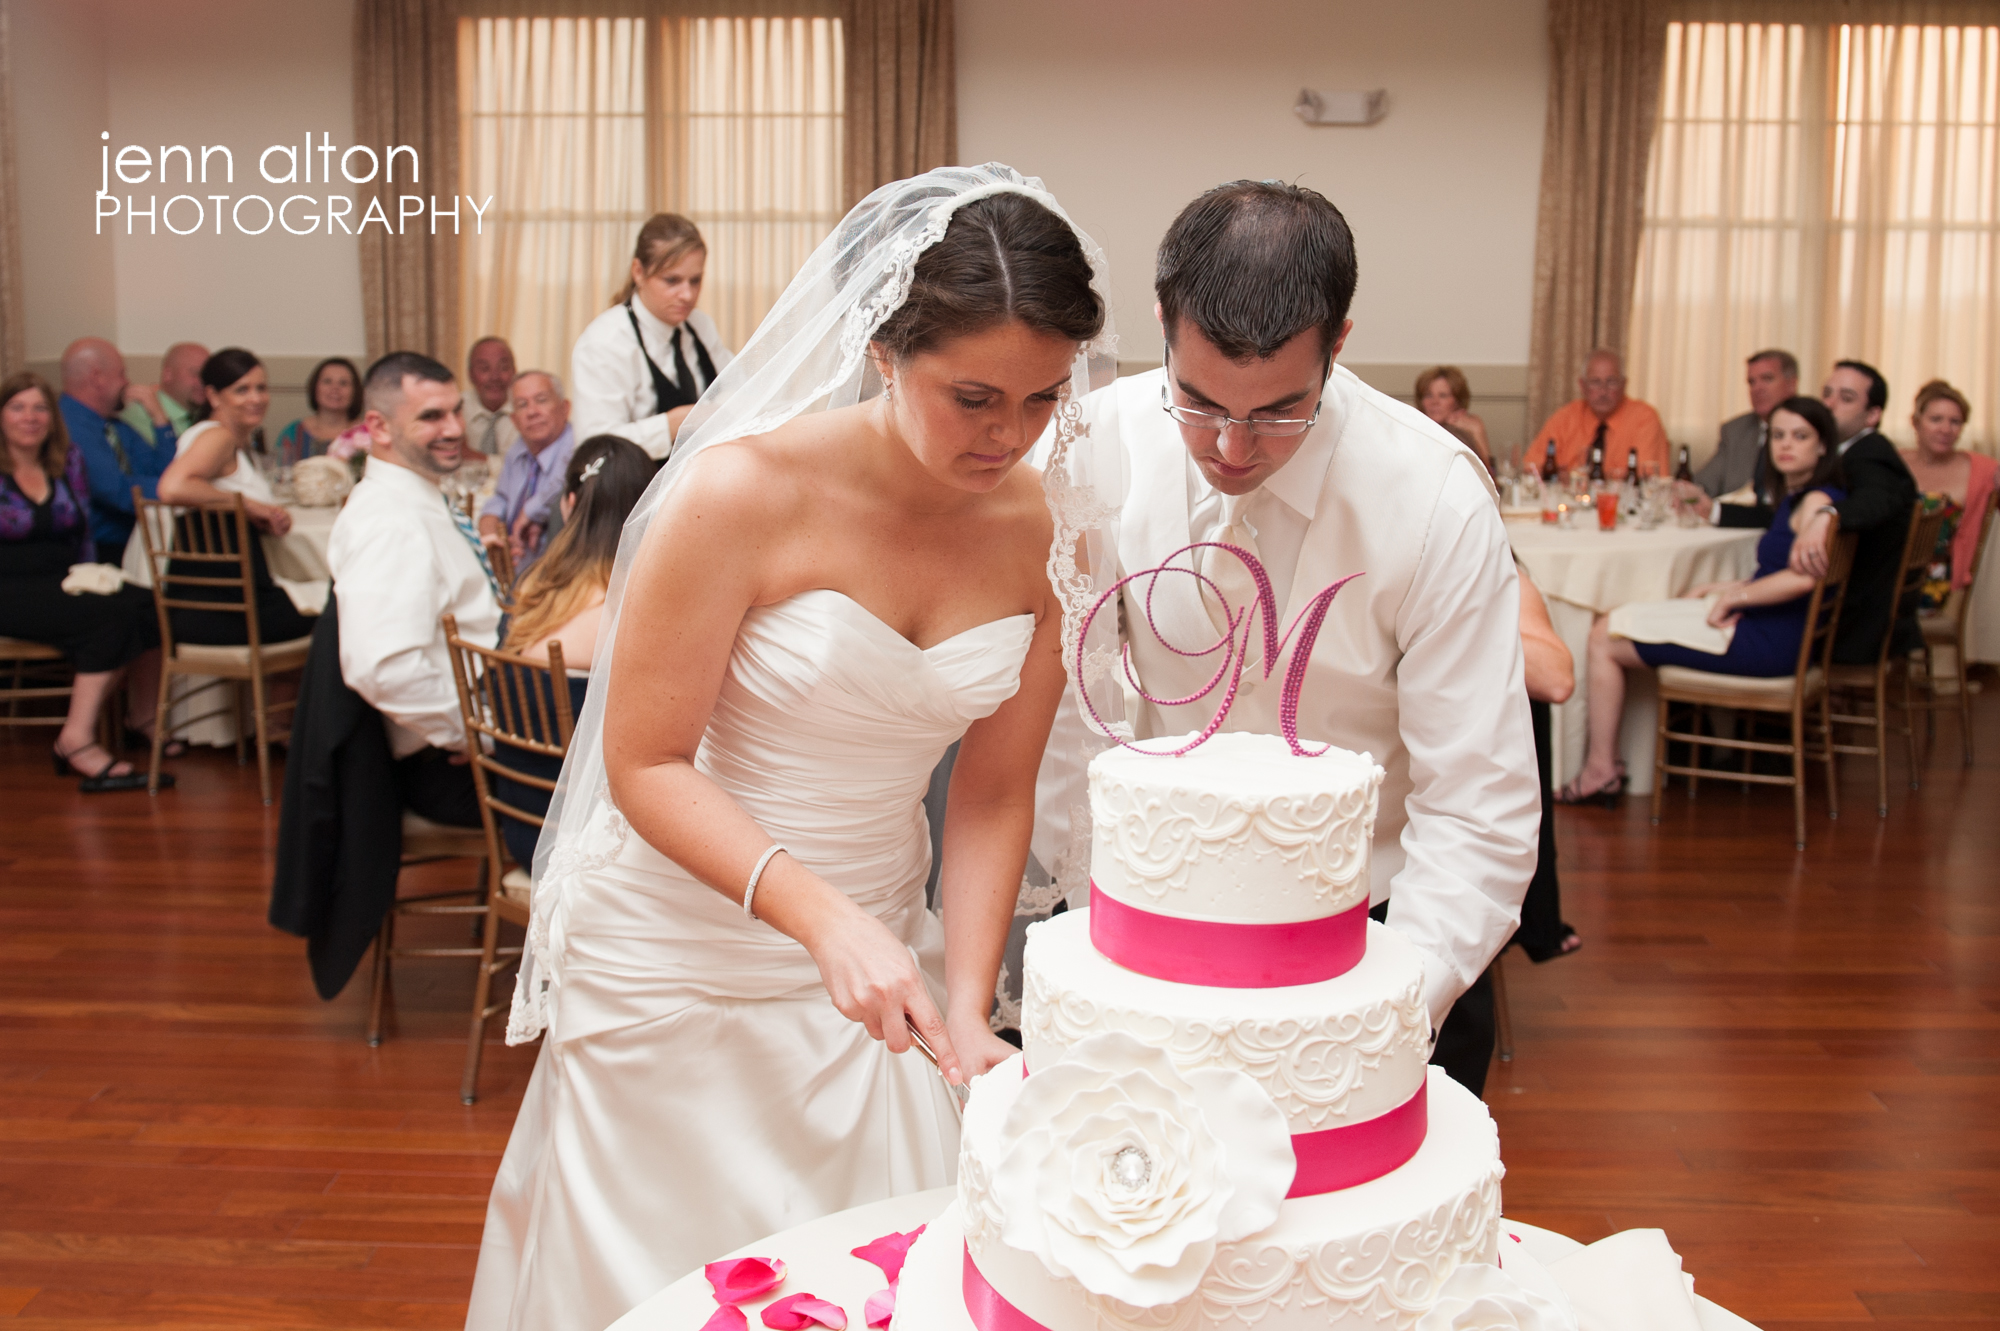 Cake cutting, bride and groom, Merrimack Valley